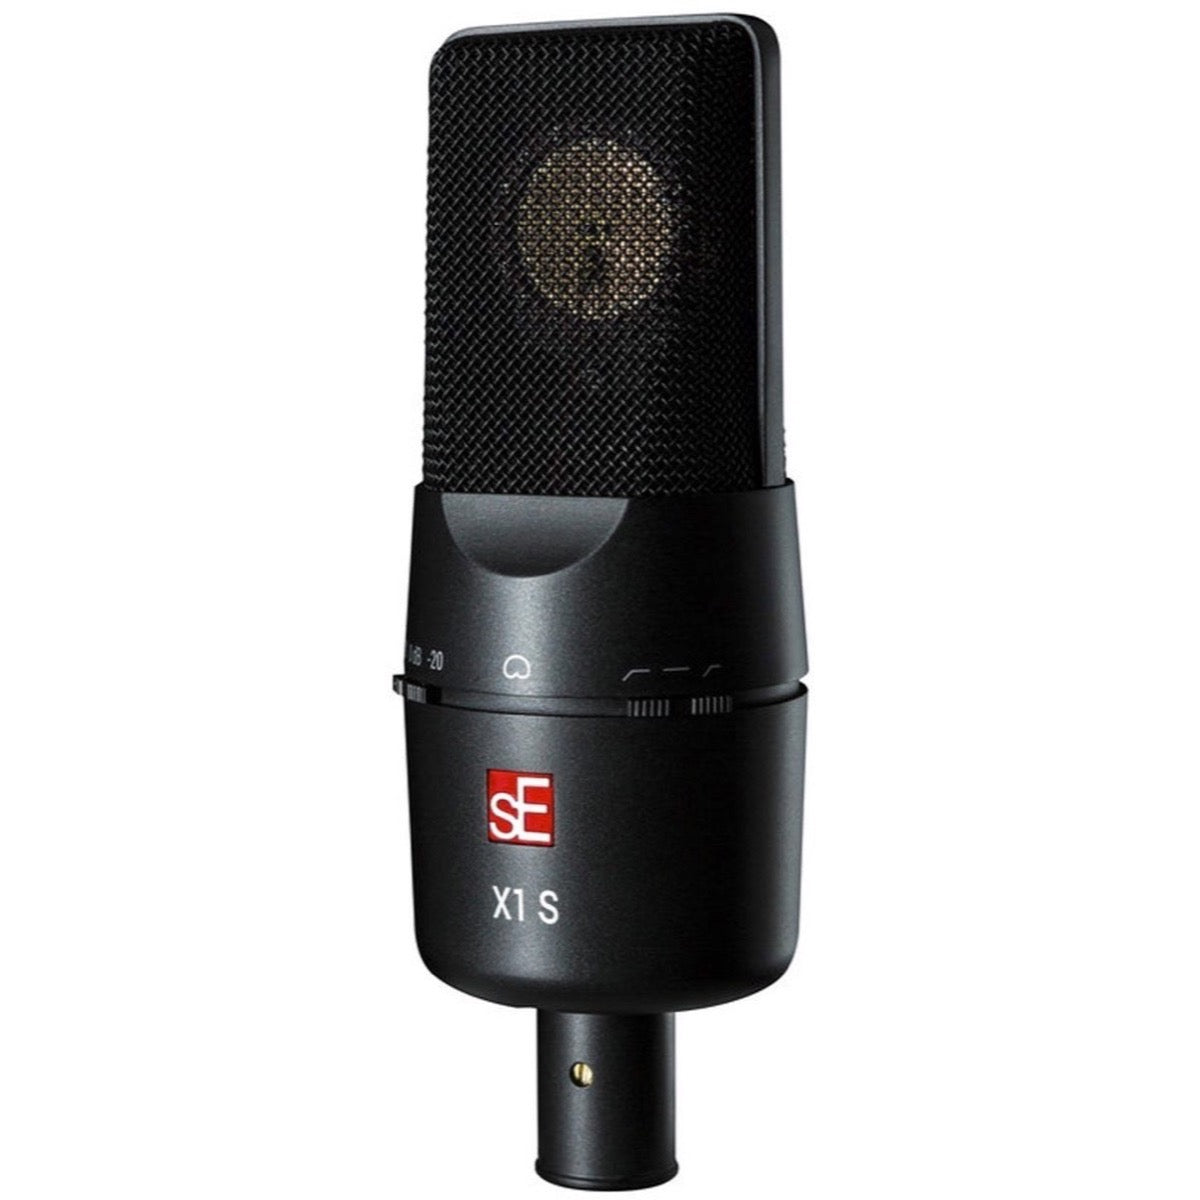 SE Electronics X1 S Vocal Microphone with Isolation Pack Shock Mount, Pop Filter, and Cable